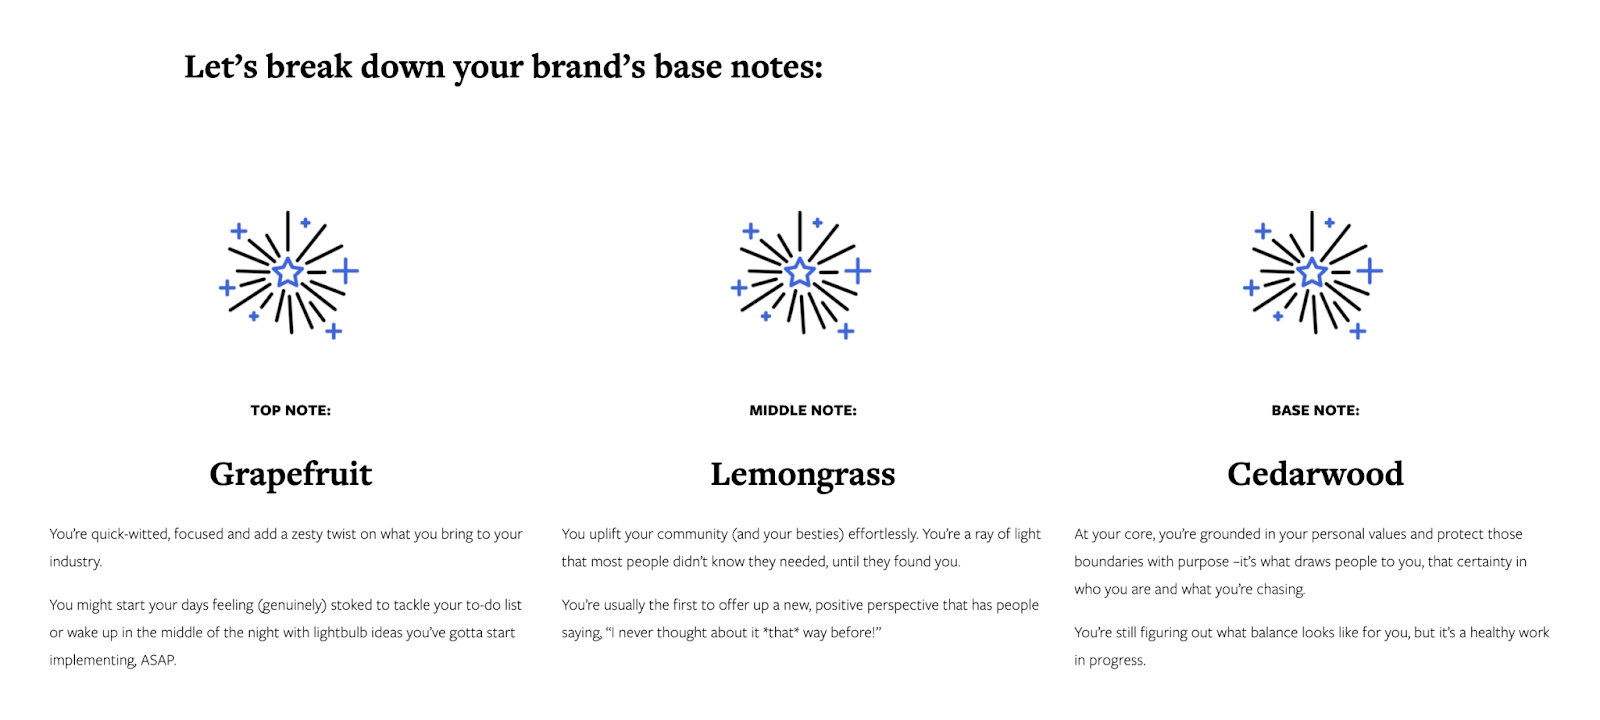 image of brand scent notes